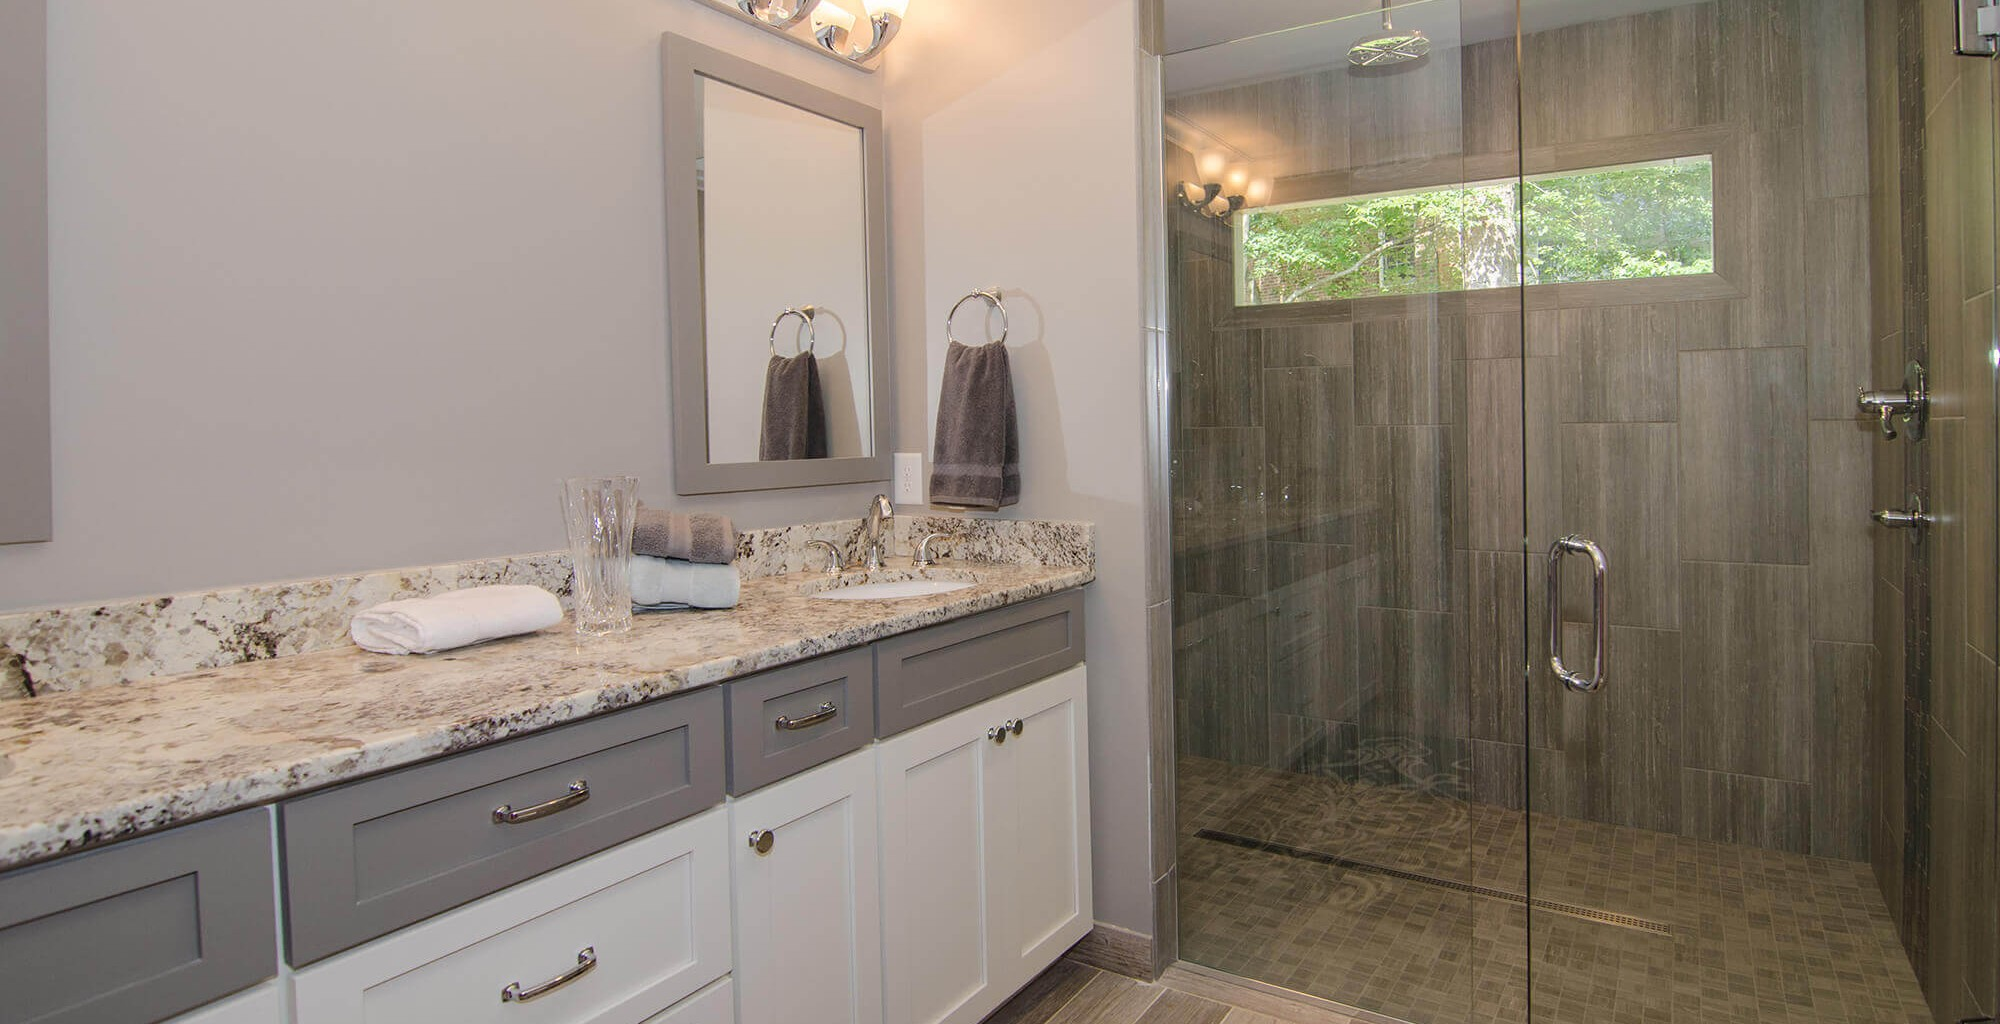 Raleigh NC Home Remodeling Contractor Blue Ribbon Construction - Bathroom cabinets raleigh nc